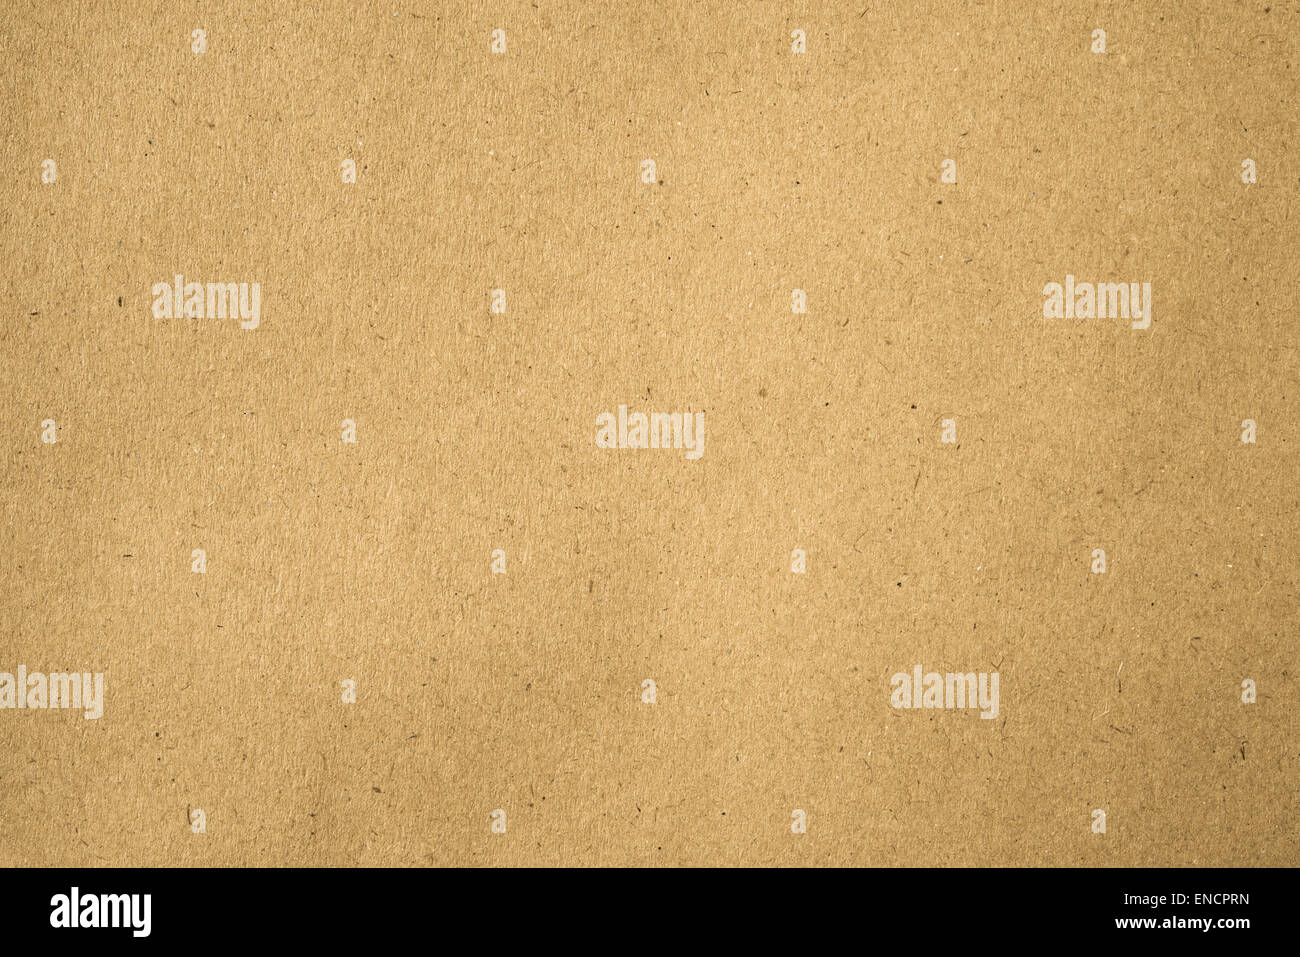 paper texture - Stock Image